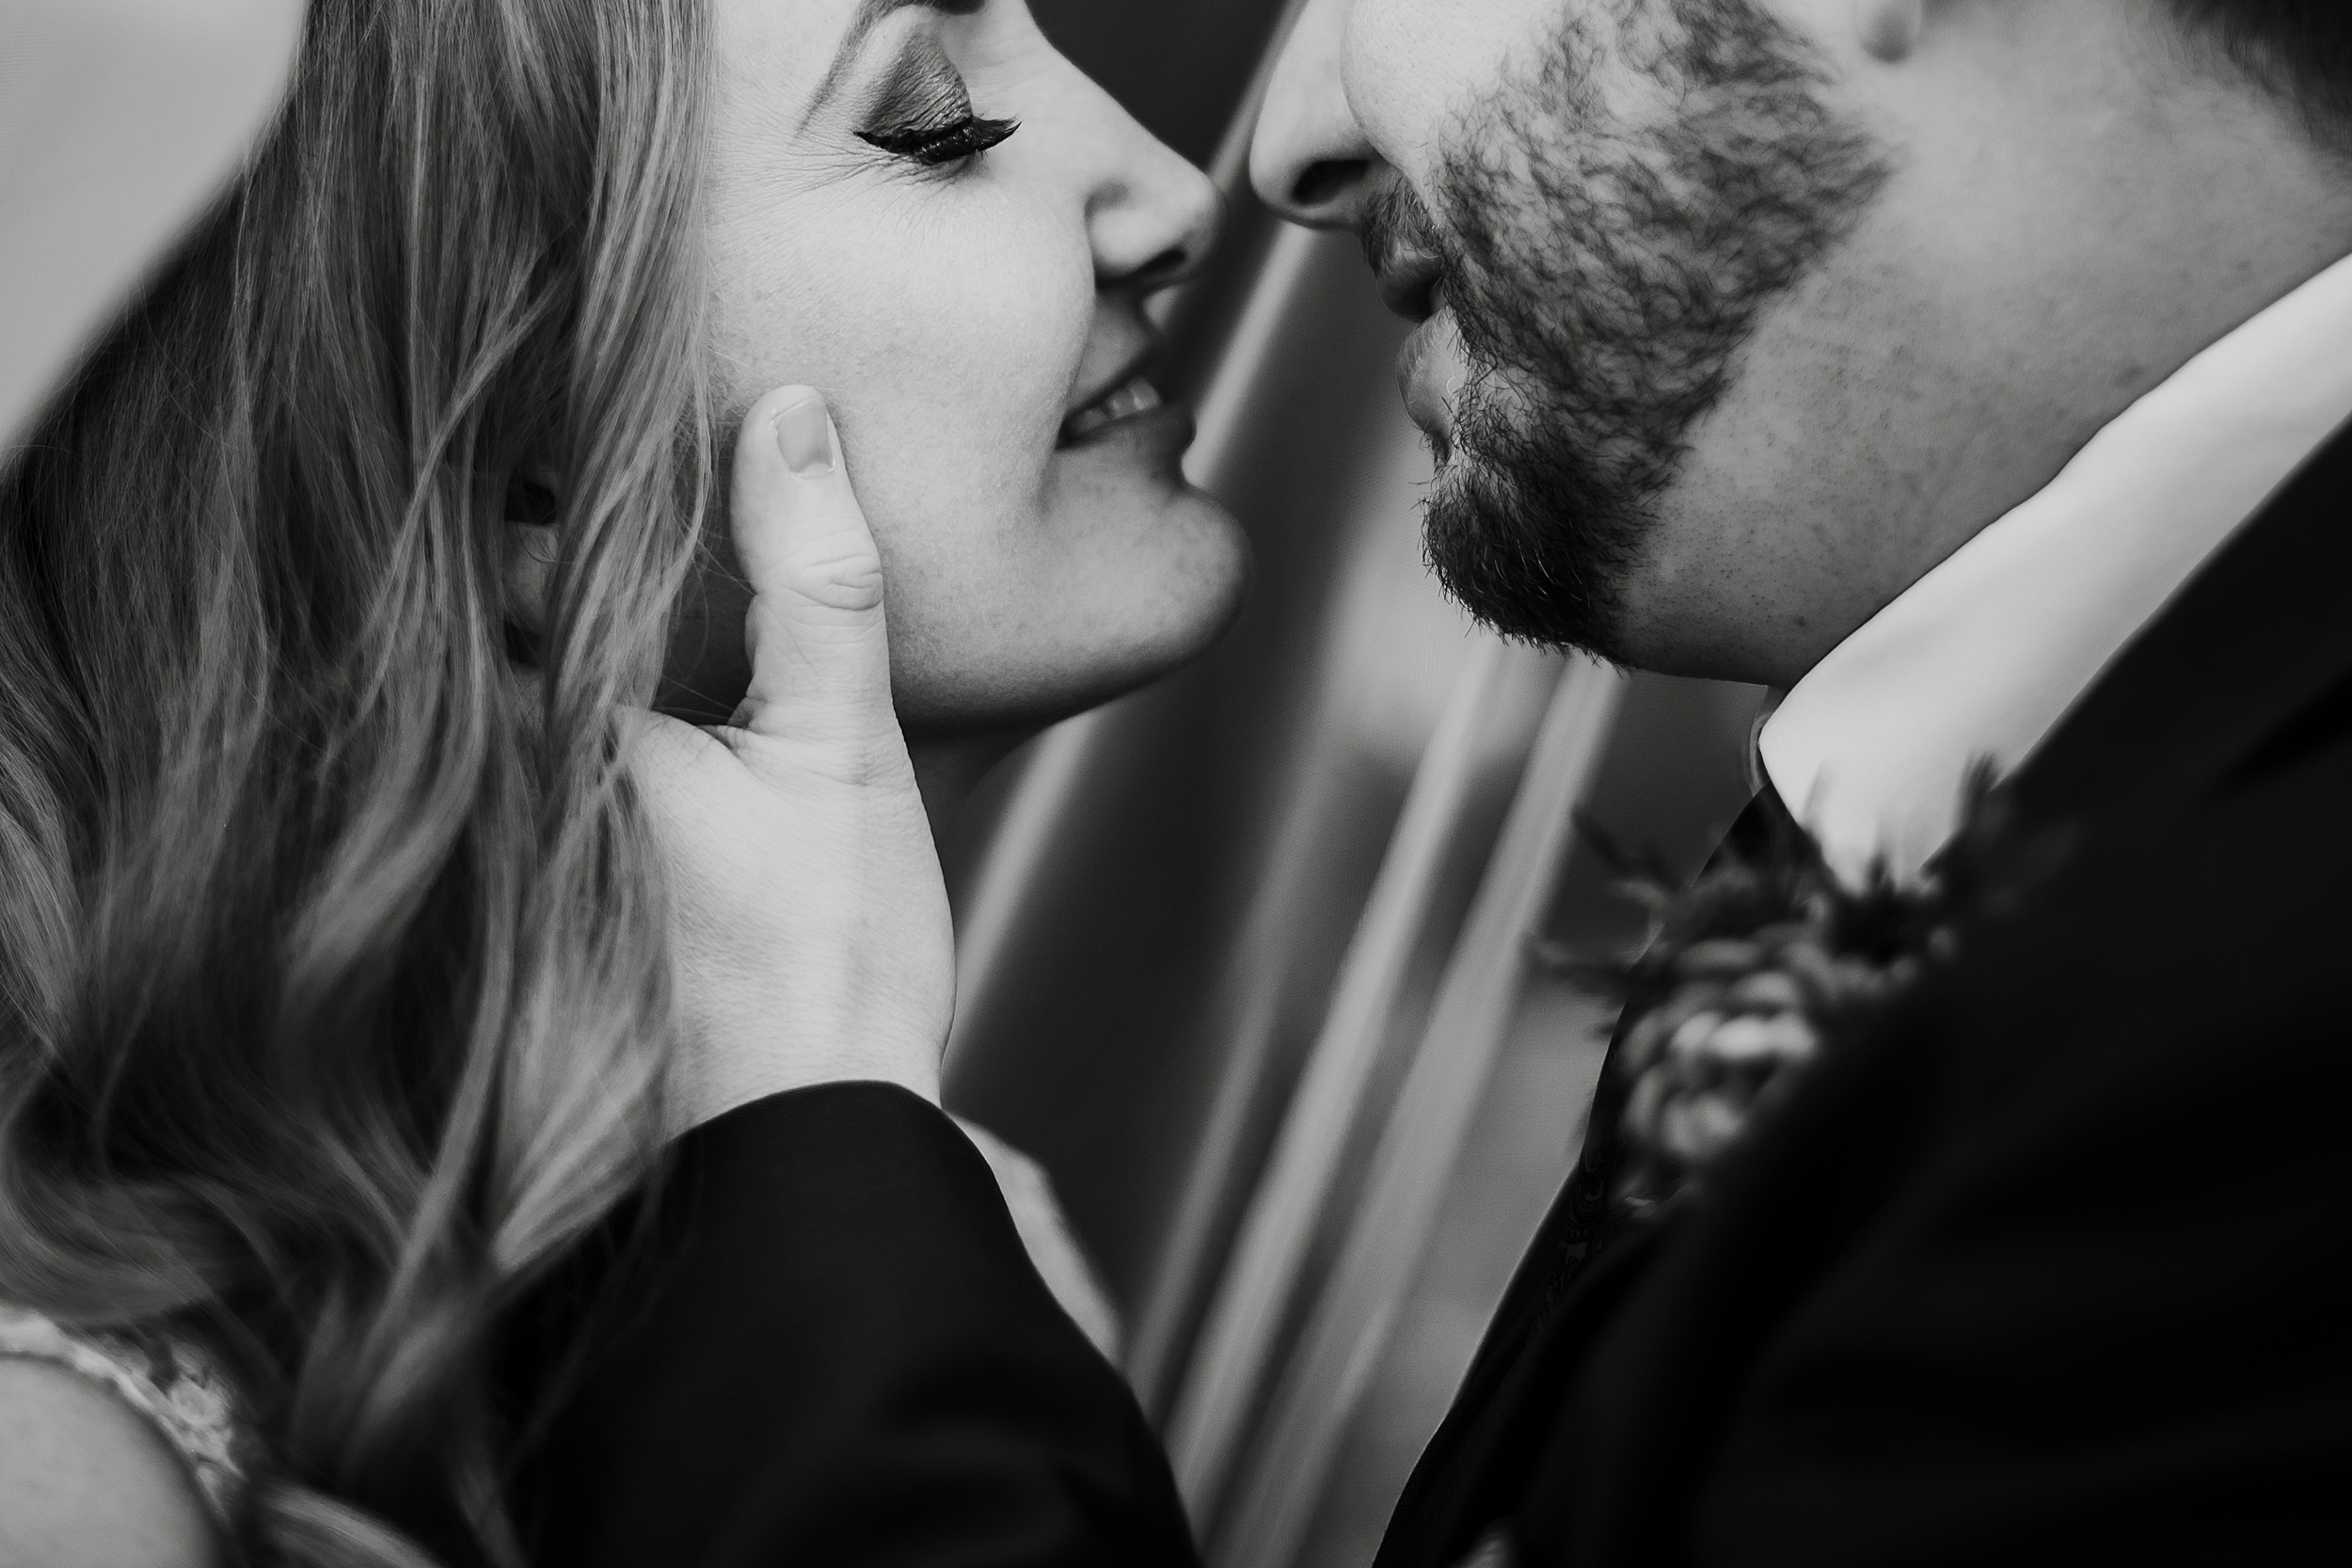 Peckforton_Castle_Cheshire_Toronto_Wedding_Photographer_UK_Destination_Wedding_0103.jpg